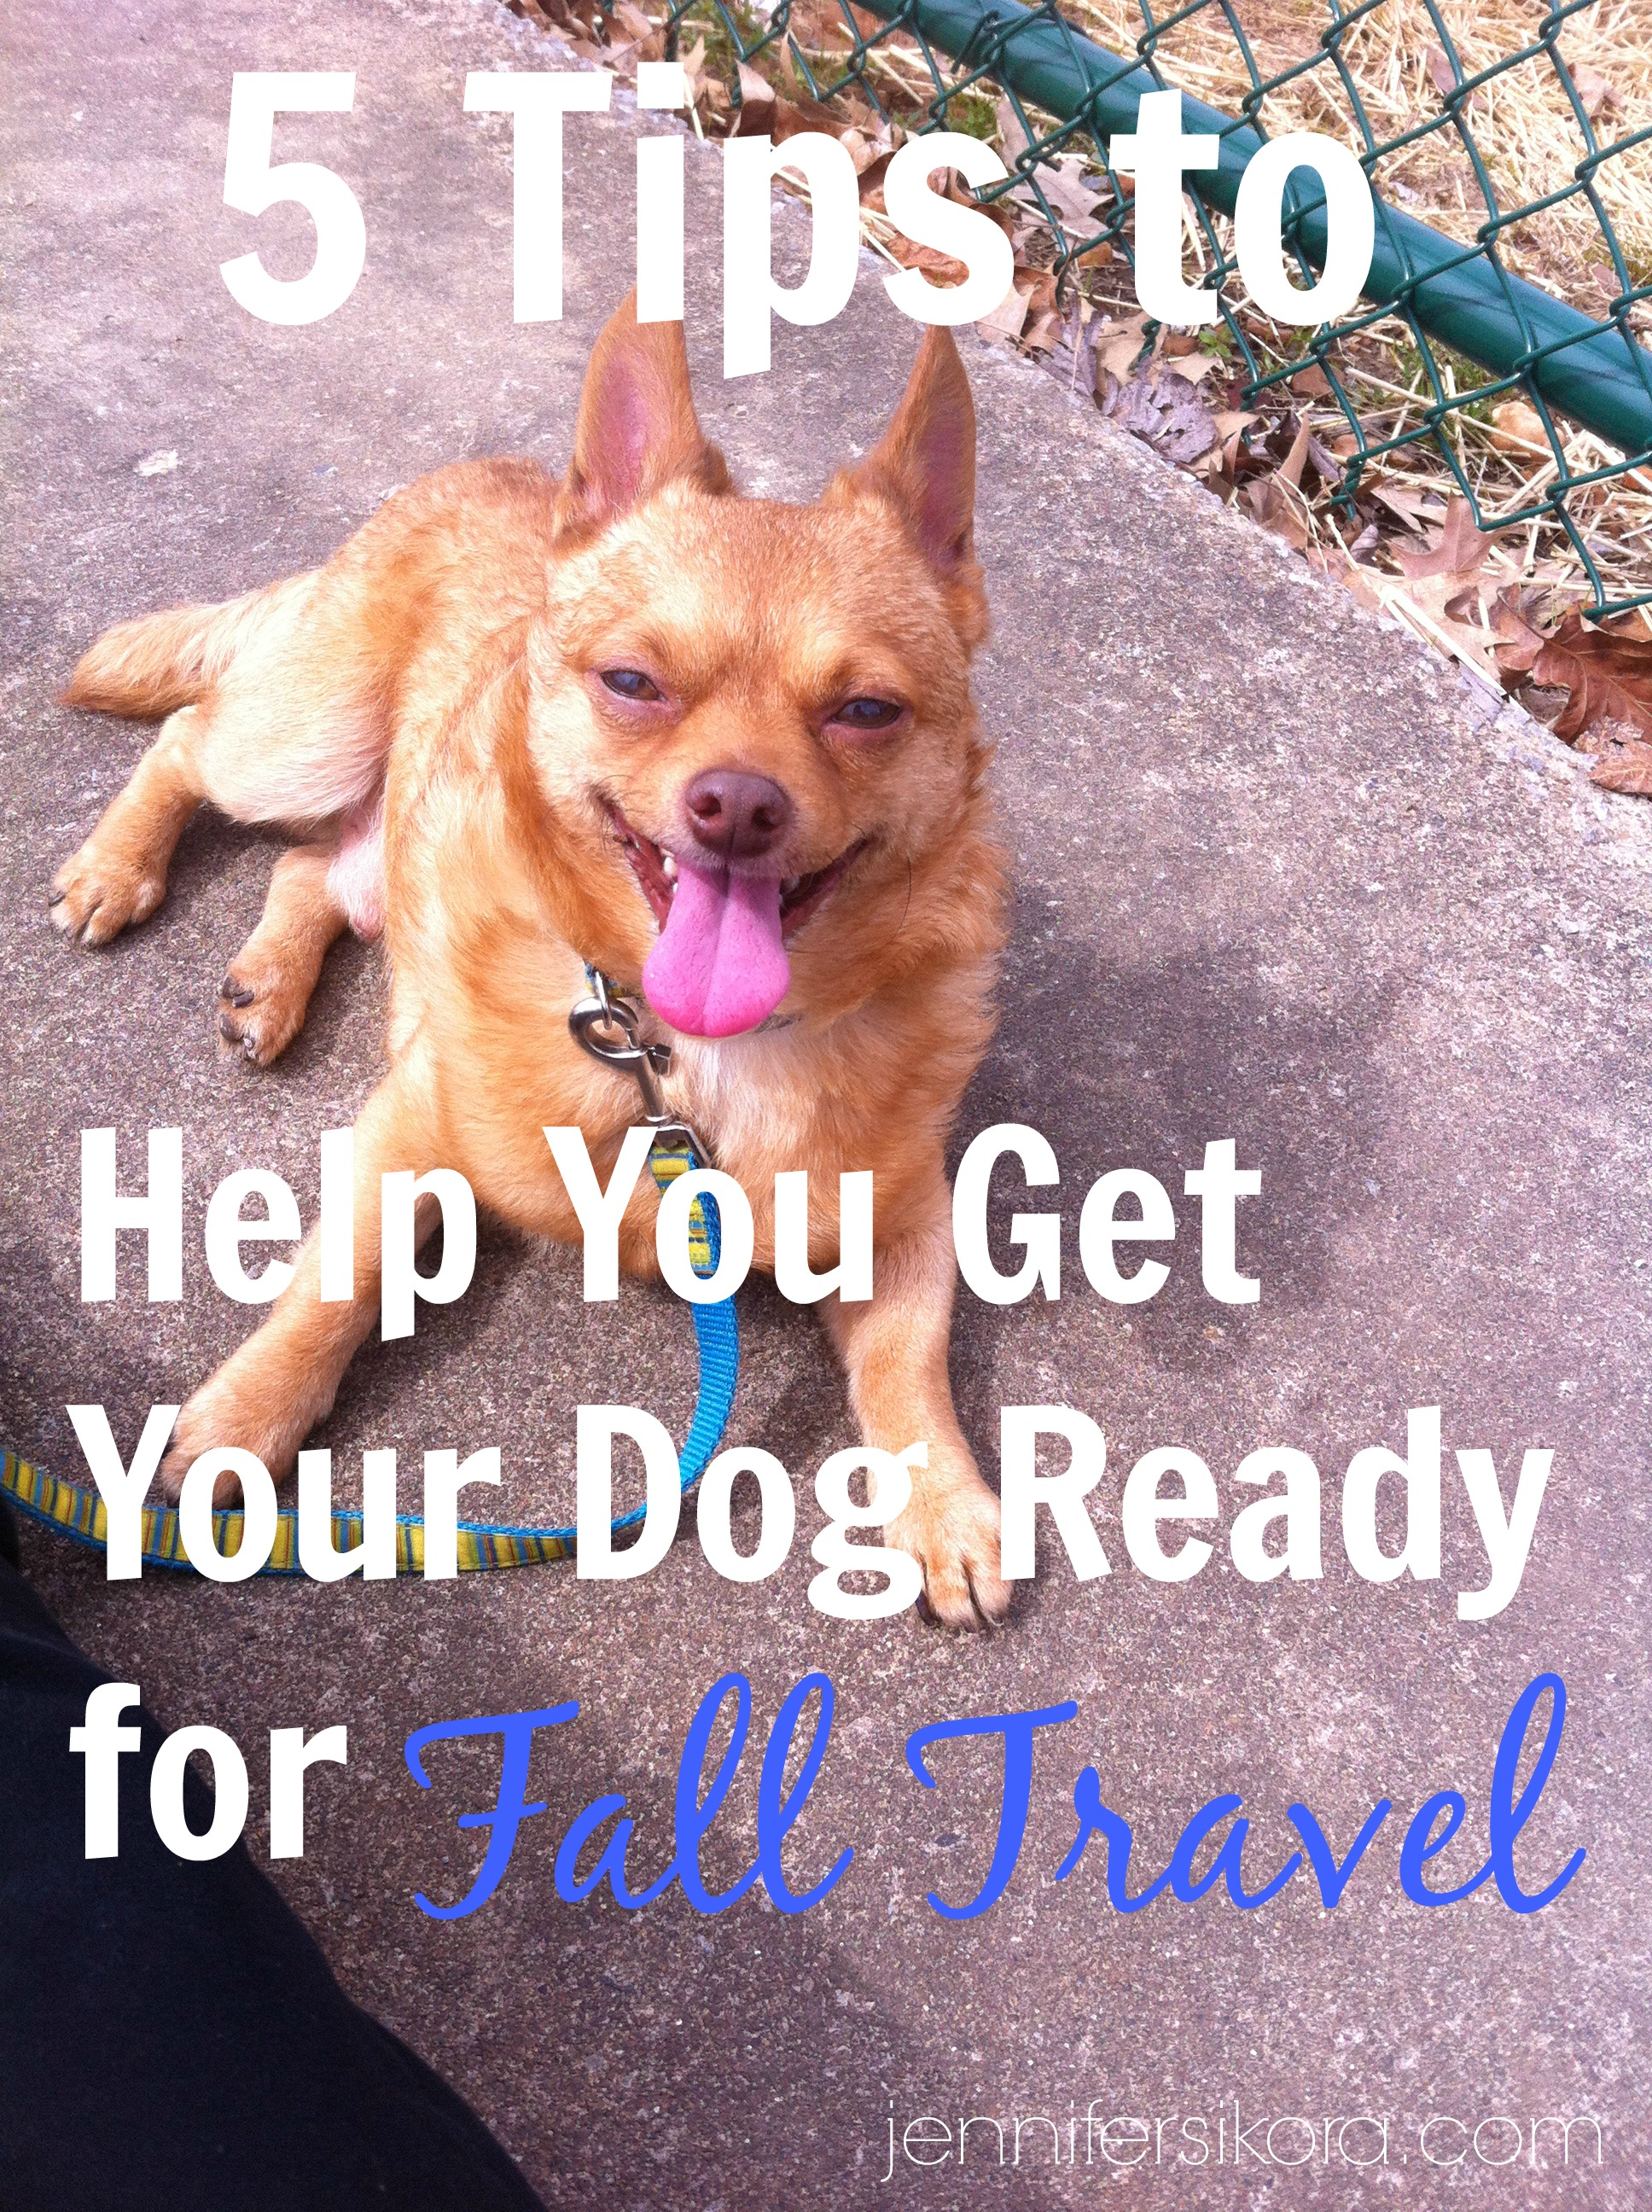 5 Tips to Get Your Pet Ready for Fall Travel